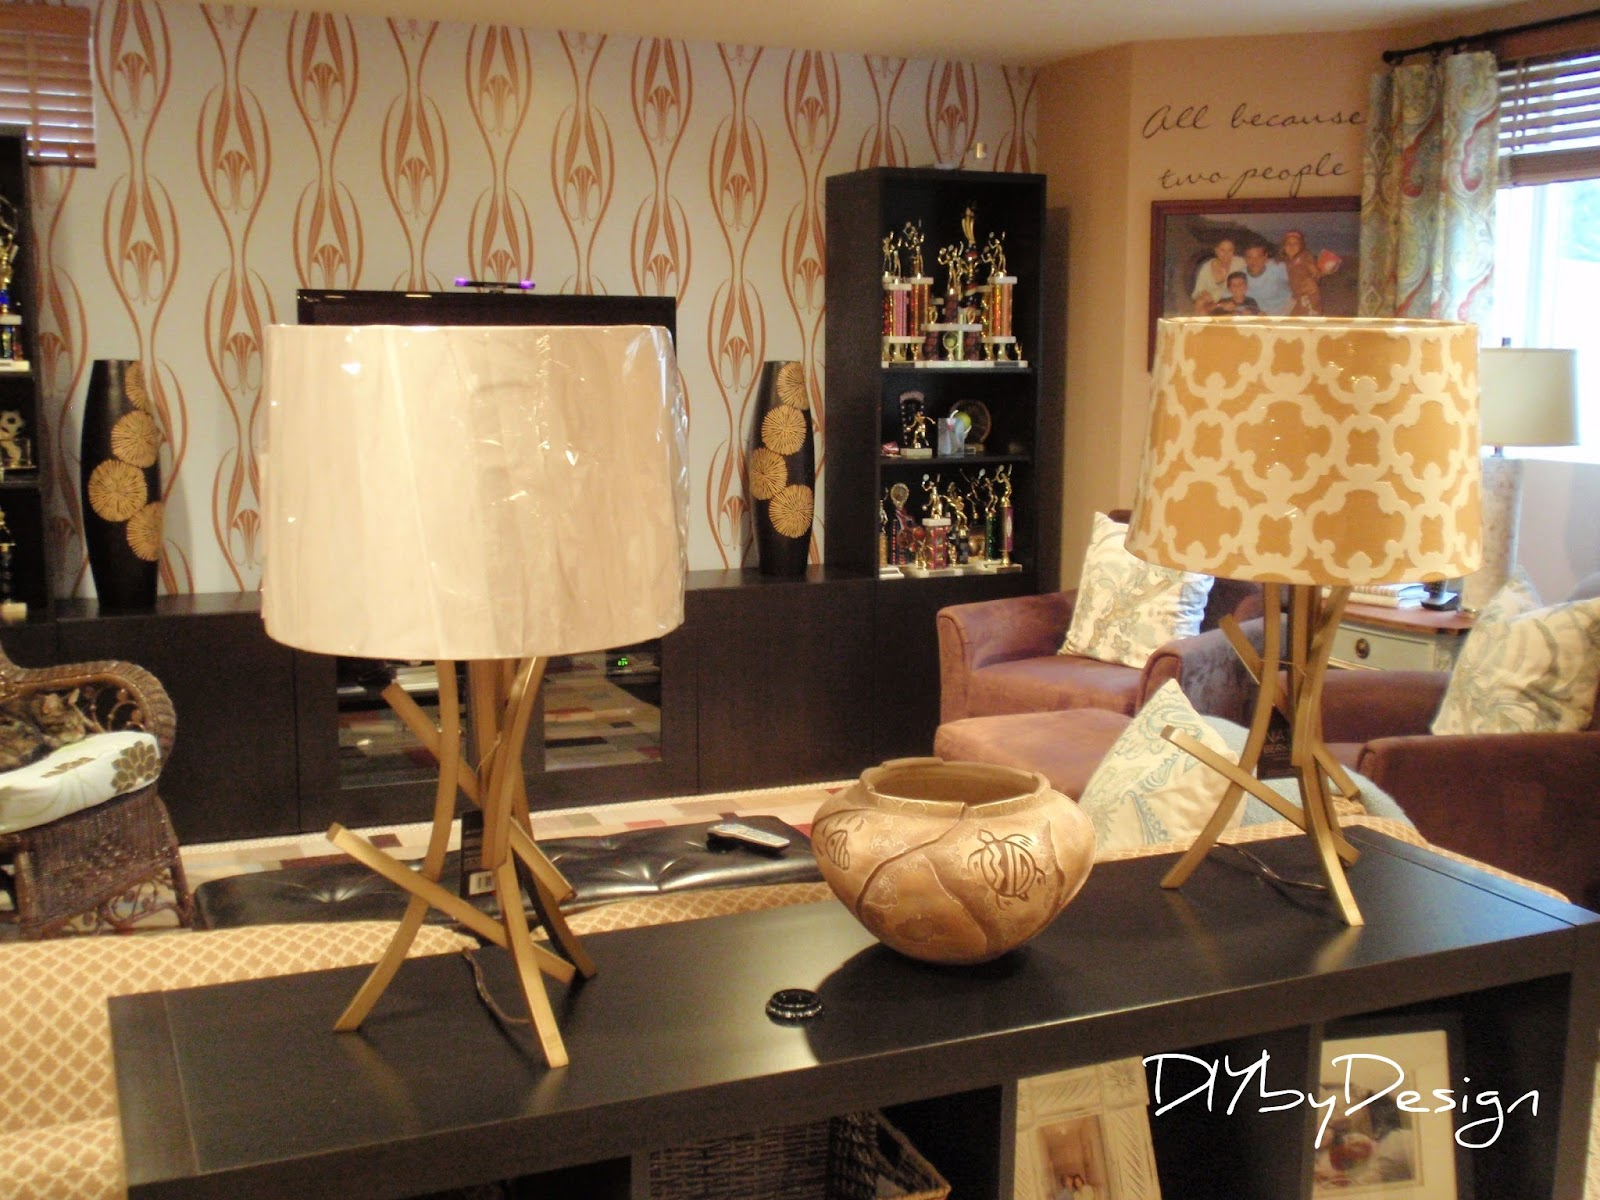 DIY by Design: Nate Berkus Branch Lamps Dilemma